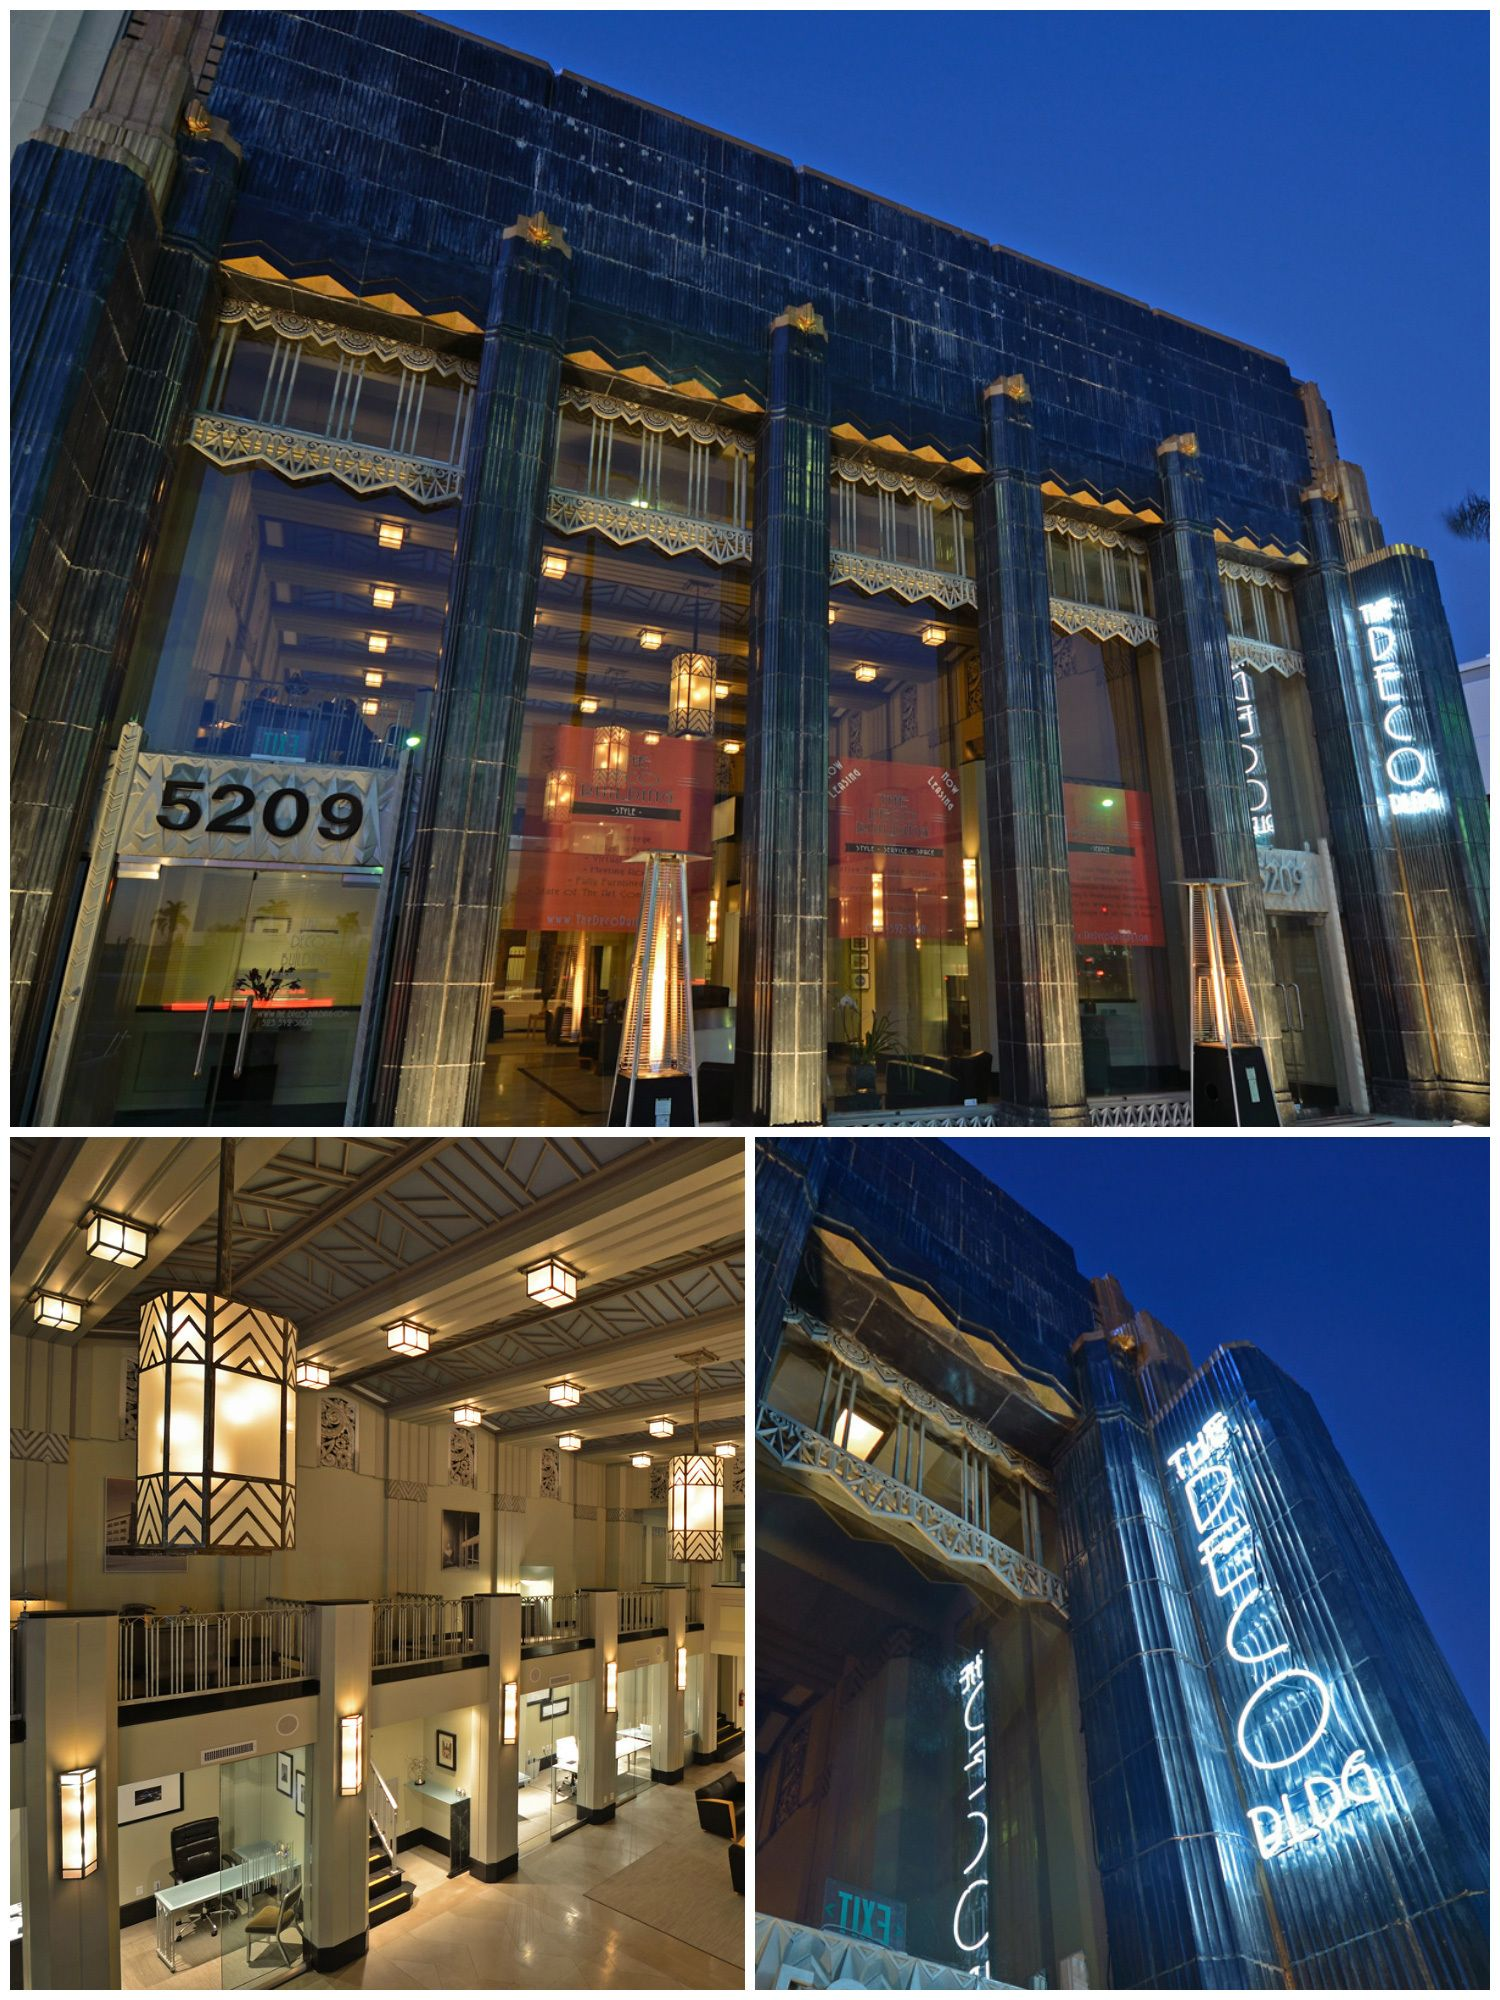 The Most Beautiful Art Deco Buildings In Los Angeles In 2020 Art Deco Buildings Art Deco Deco